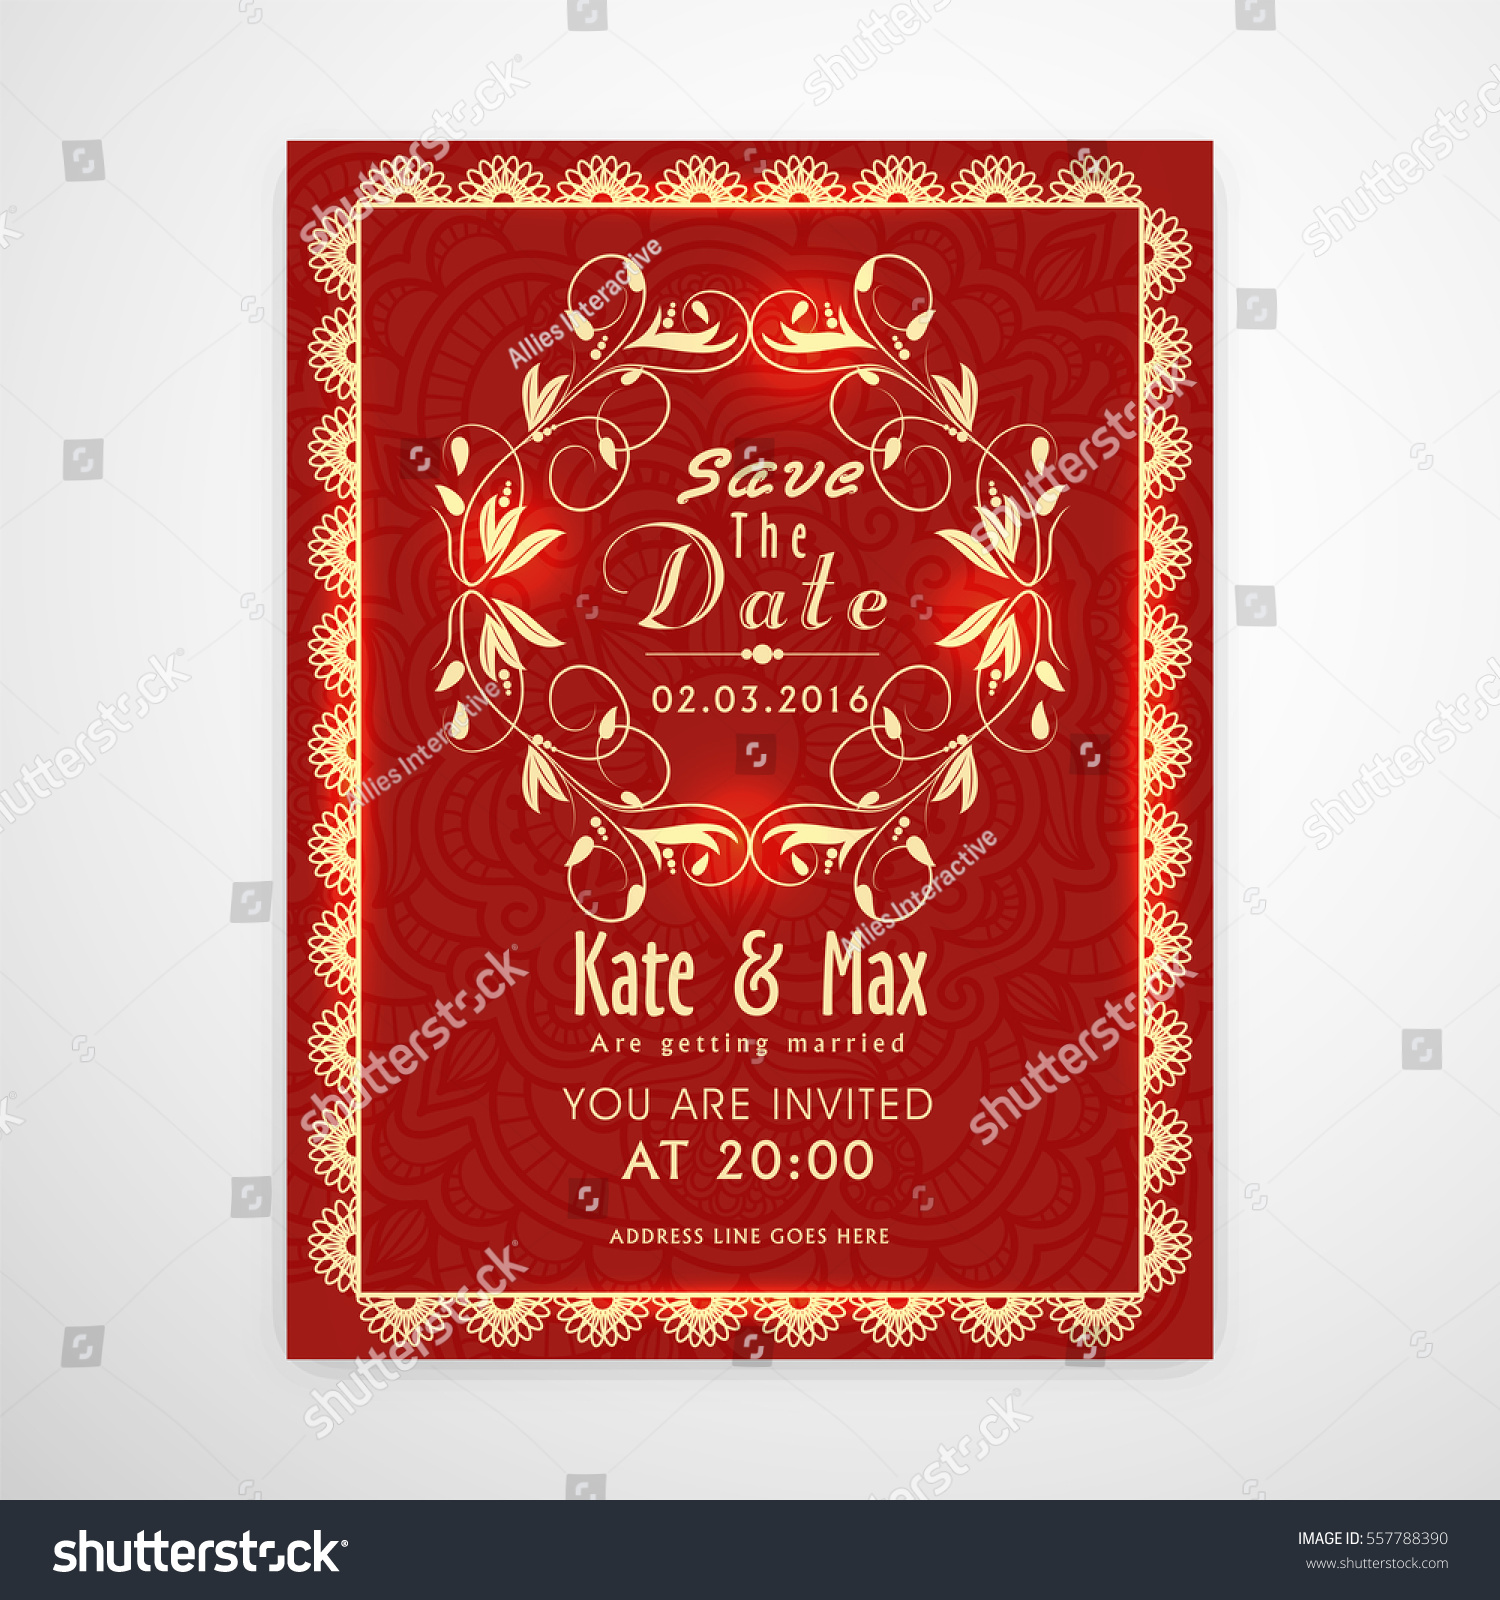 Elegant Red Beautiful Wedding Invitation Card Stock Vector (Royalty ...